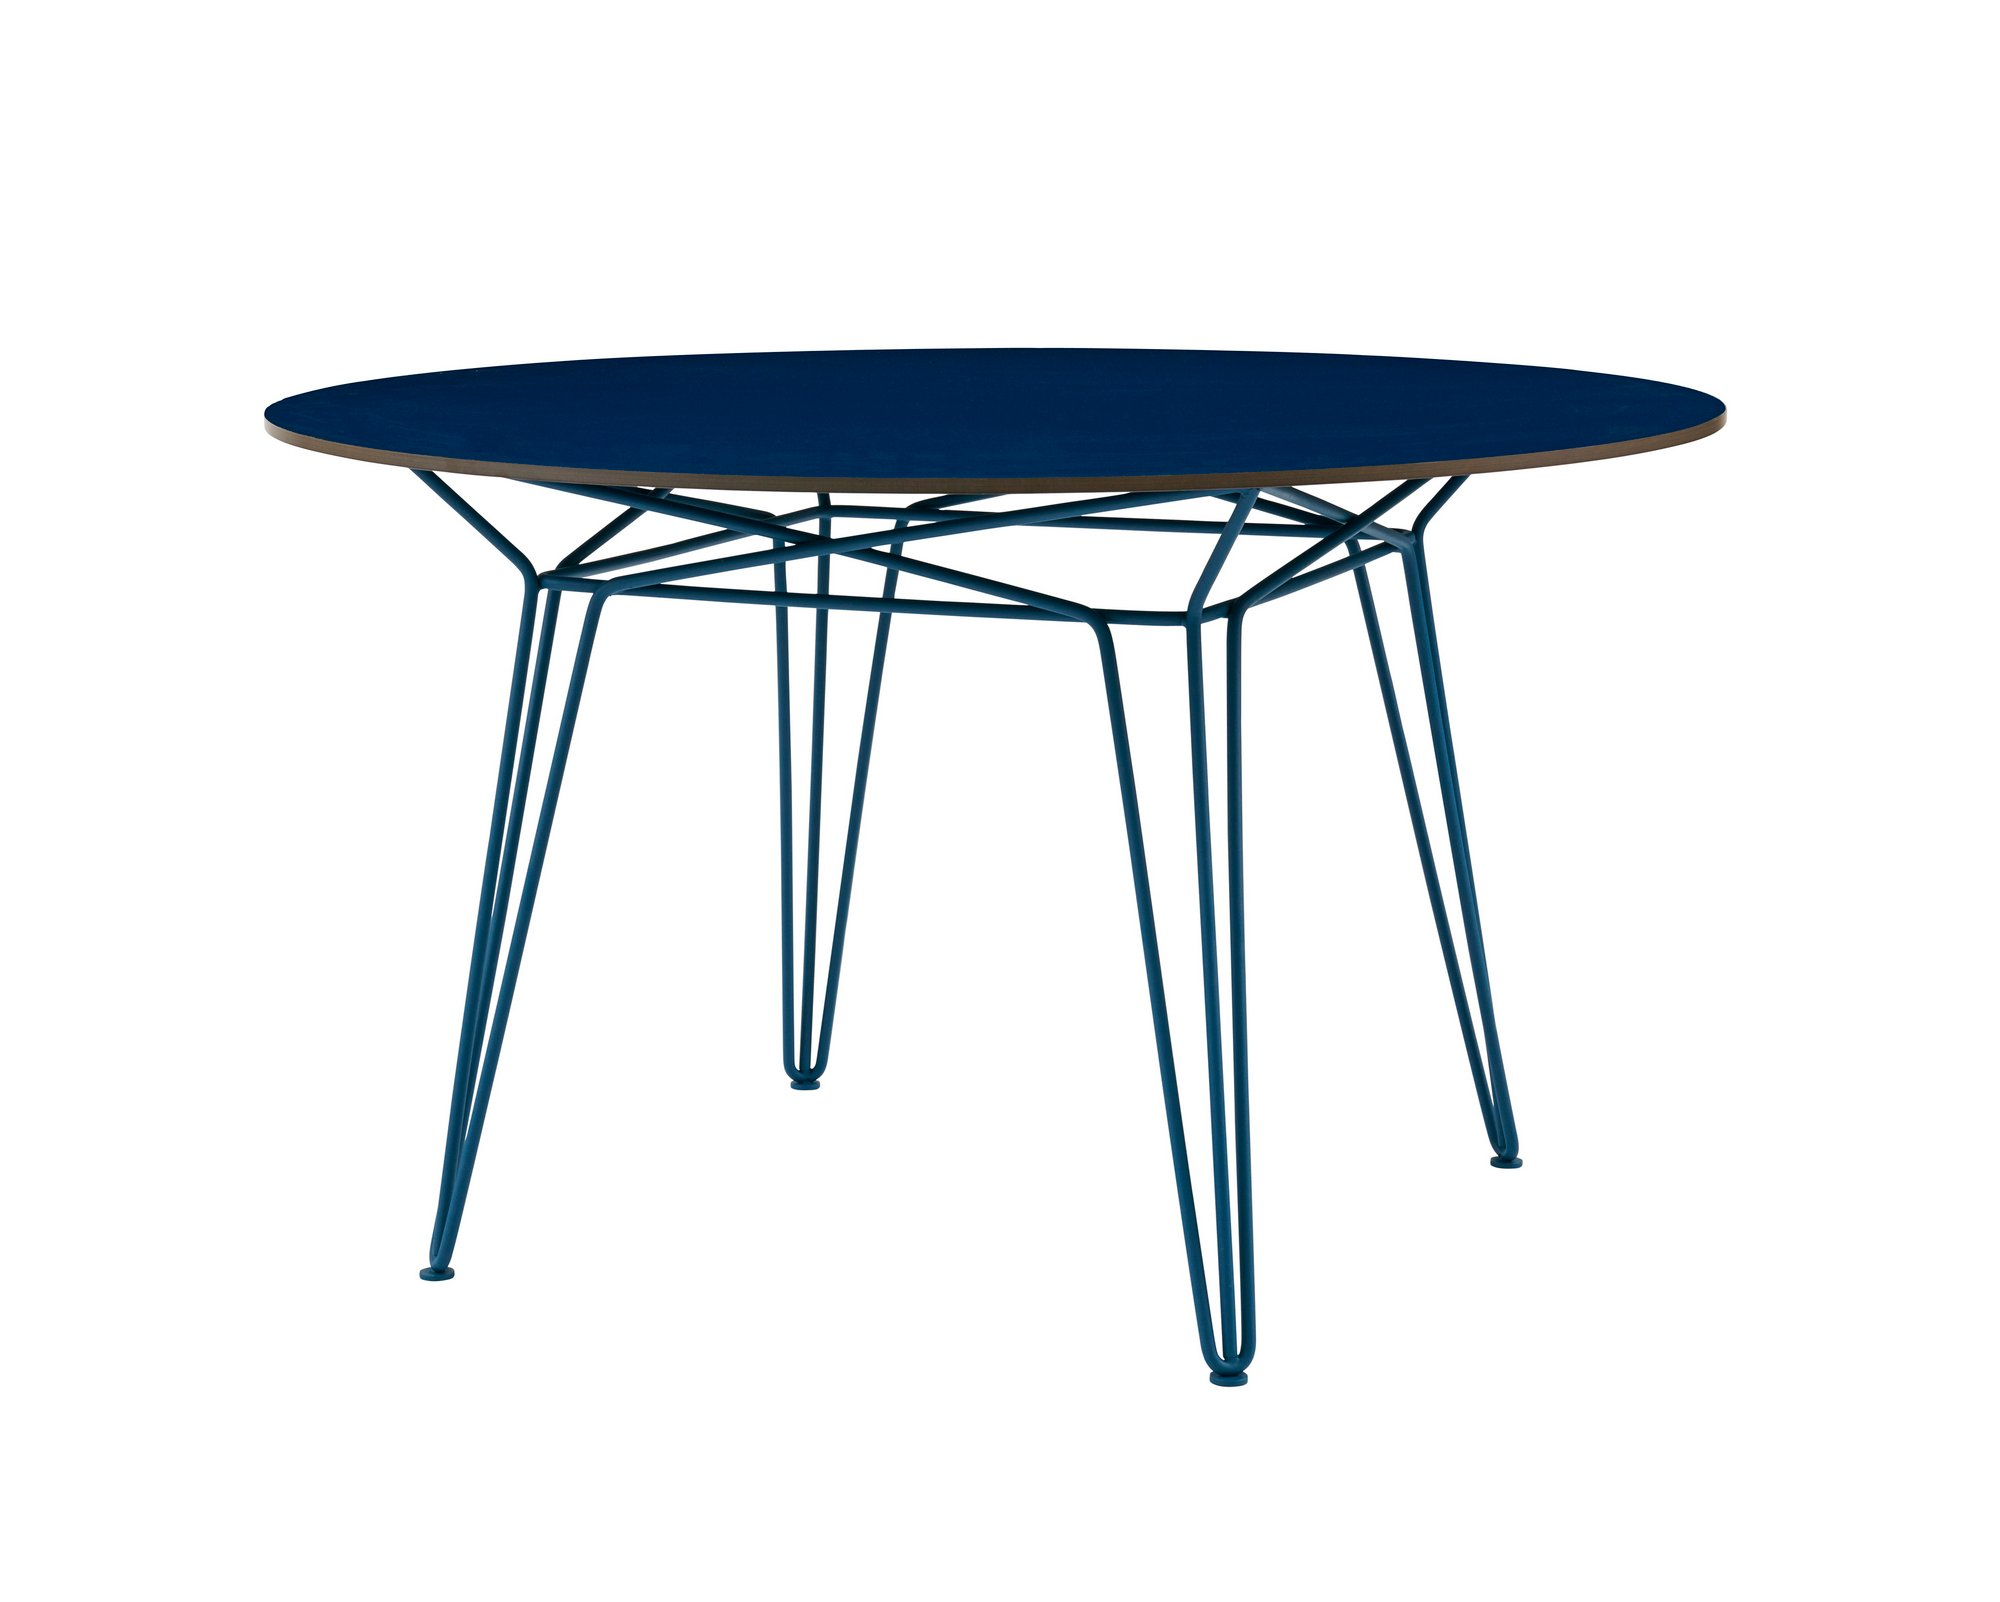 Round hpl garden table parisi outdoor collection by sp01 for Table exterieur hpl